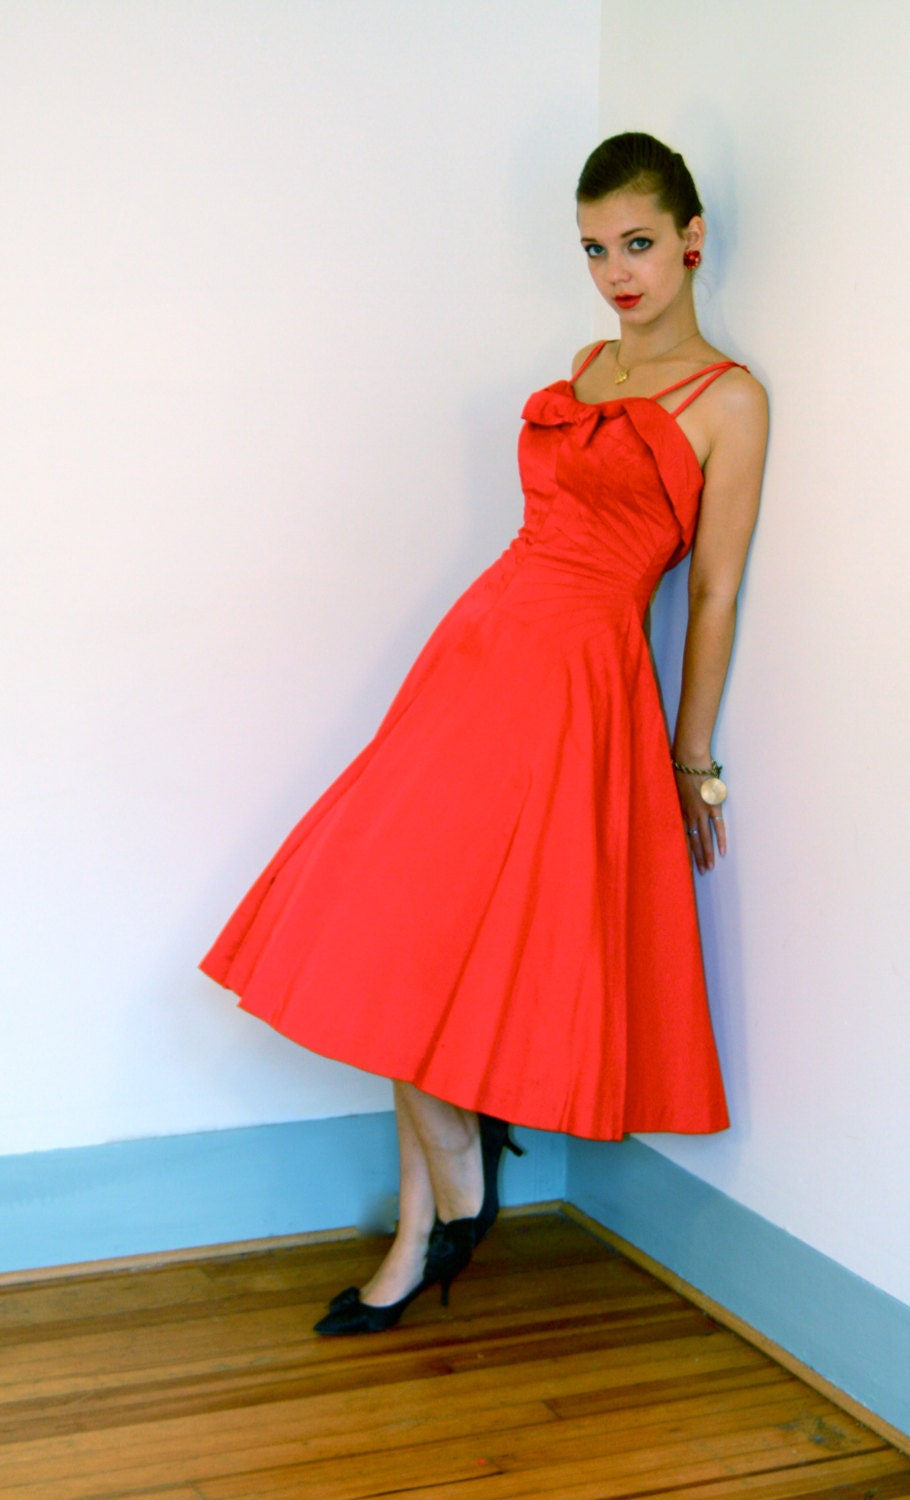 Vintage 1950s Fancy Red Satin Party Dress Full Sweep Circle Skirt Spaghetti Strap Sweetheart neckline 50s New Look Cocktail Frock - posiesforlulu